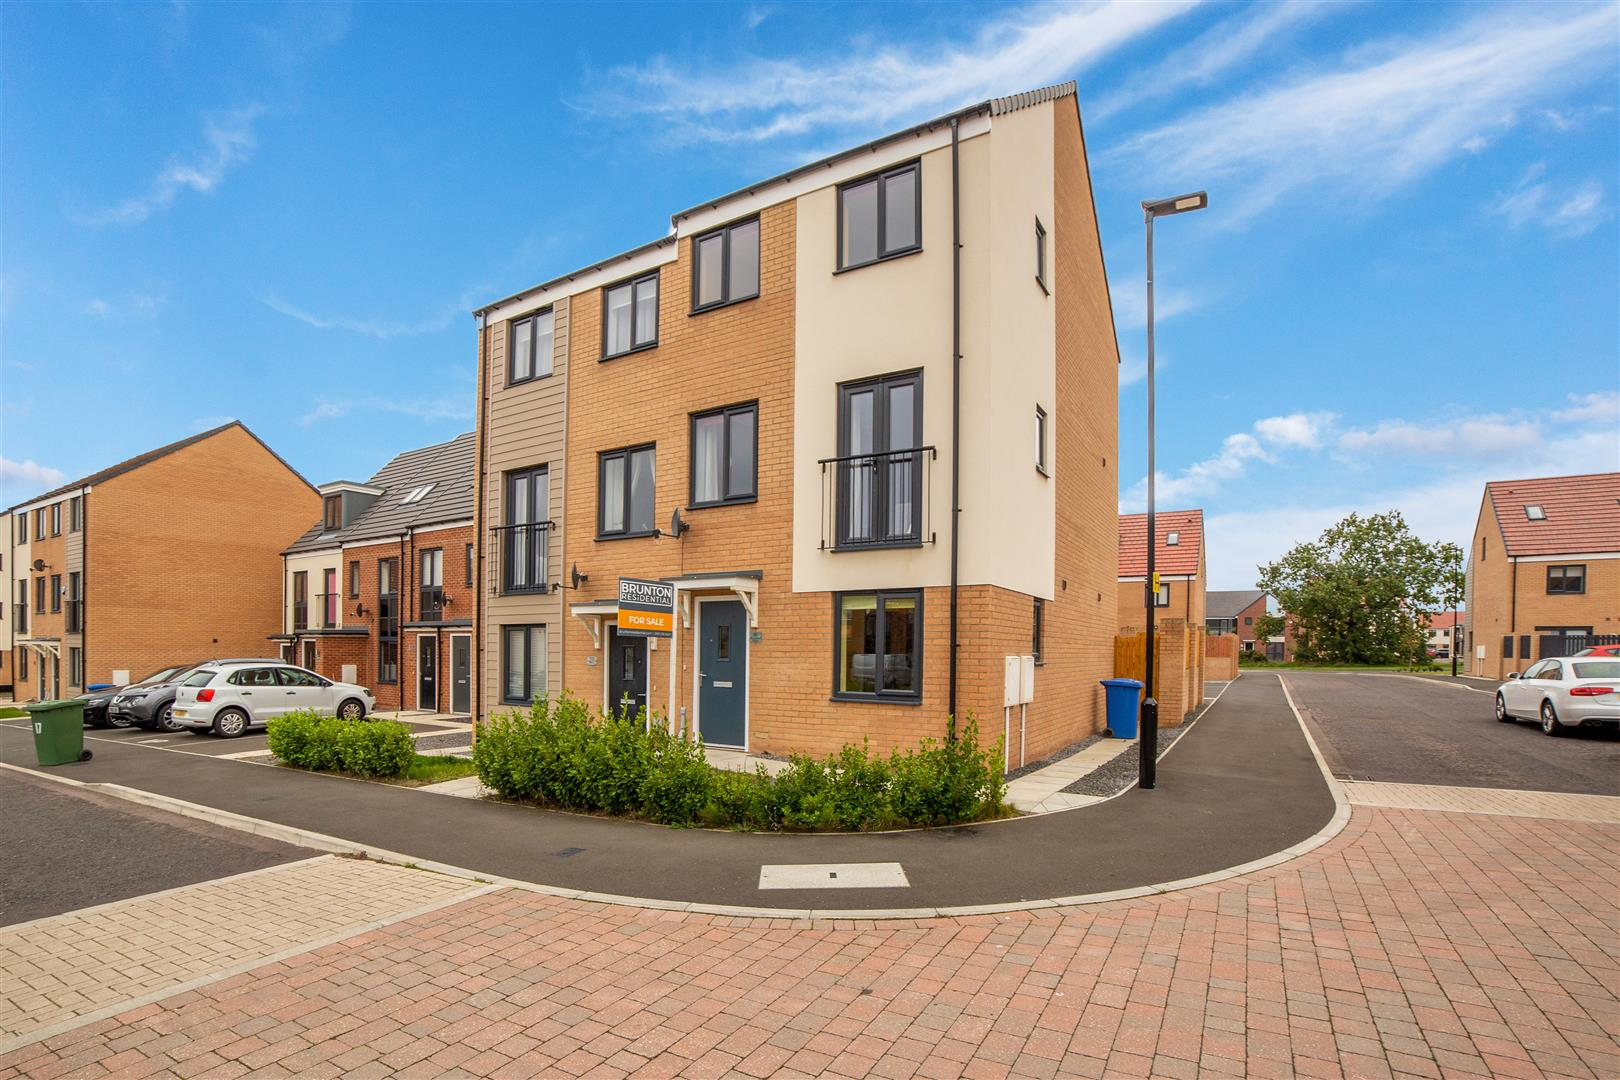 3 bed town house for sale in Newcastle Upon Tyne, NE13 9DP  - Property Image 1